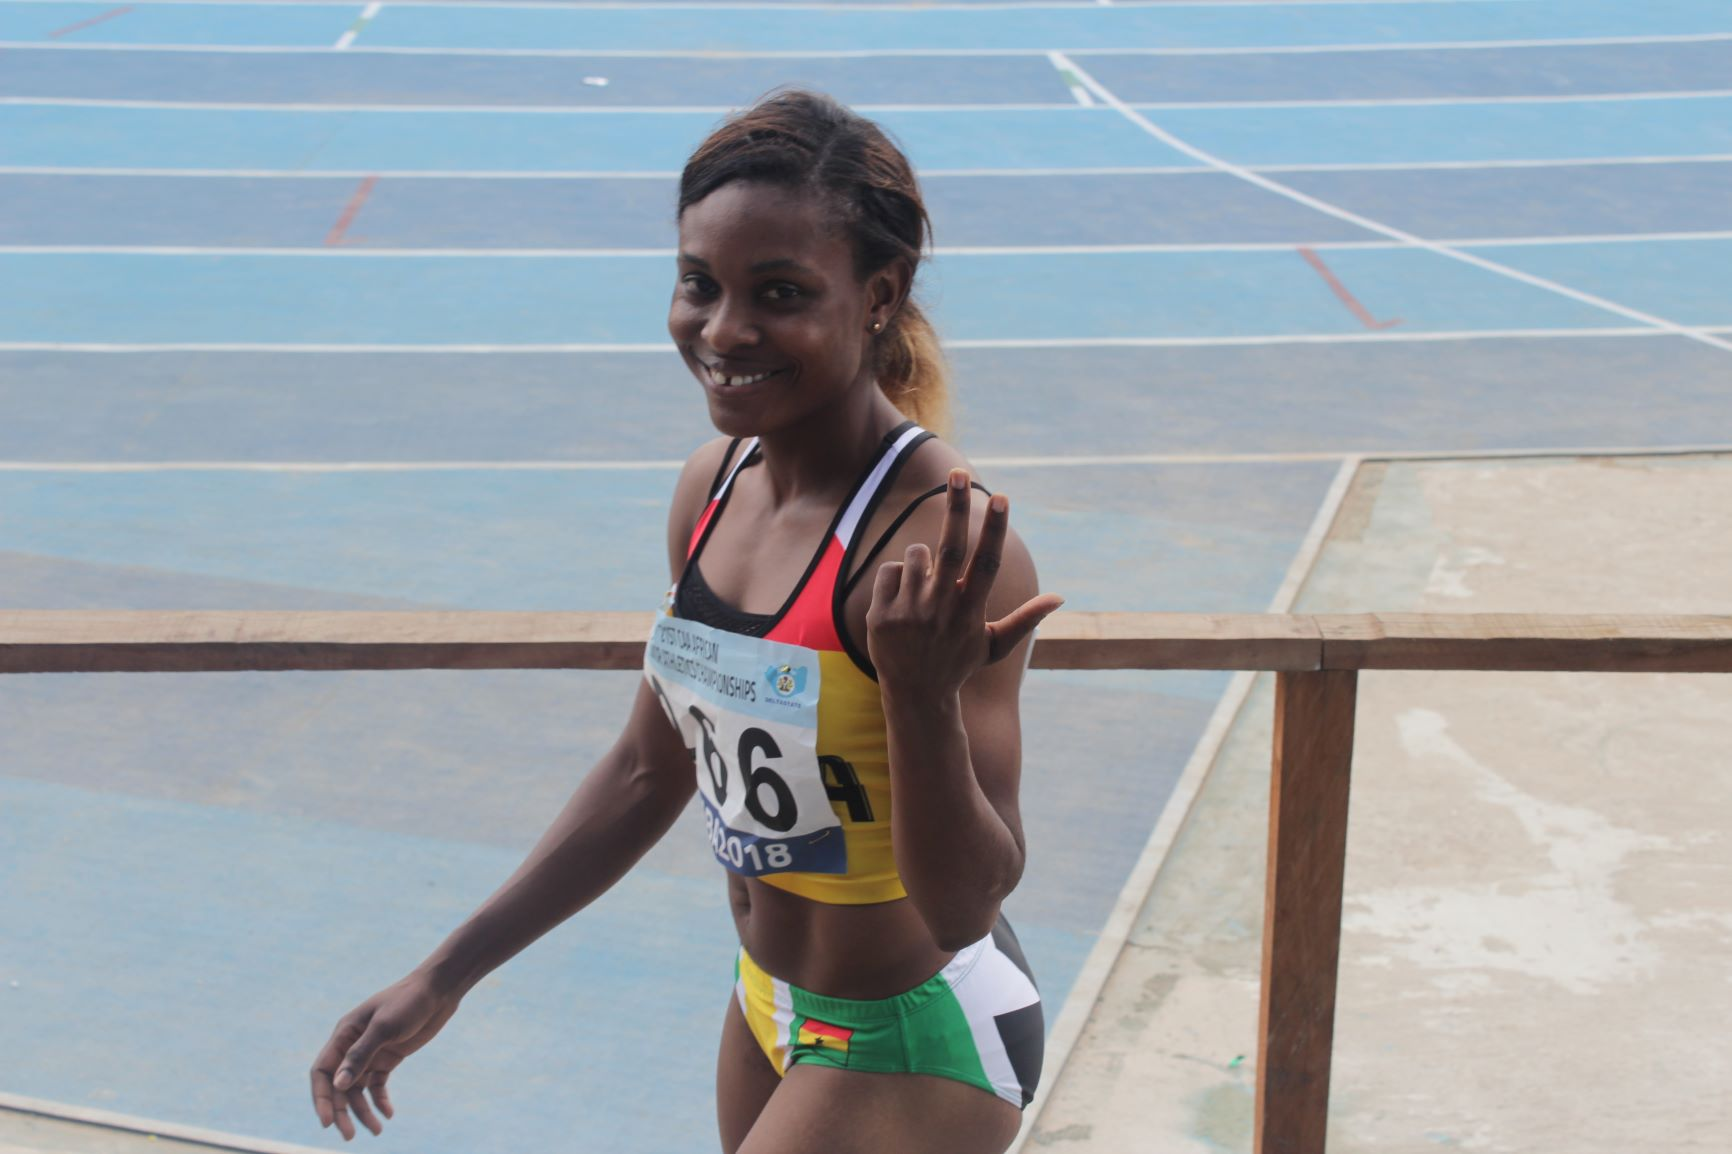 Janet Amponsah and Hor Halutie make women's 100m final at Asaba 2018